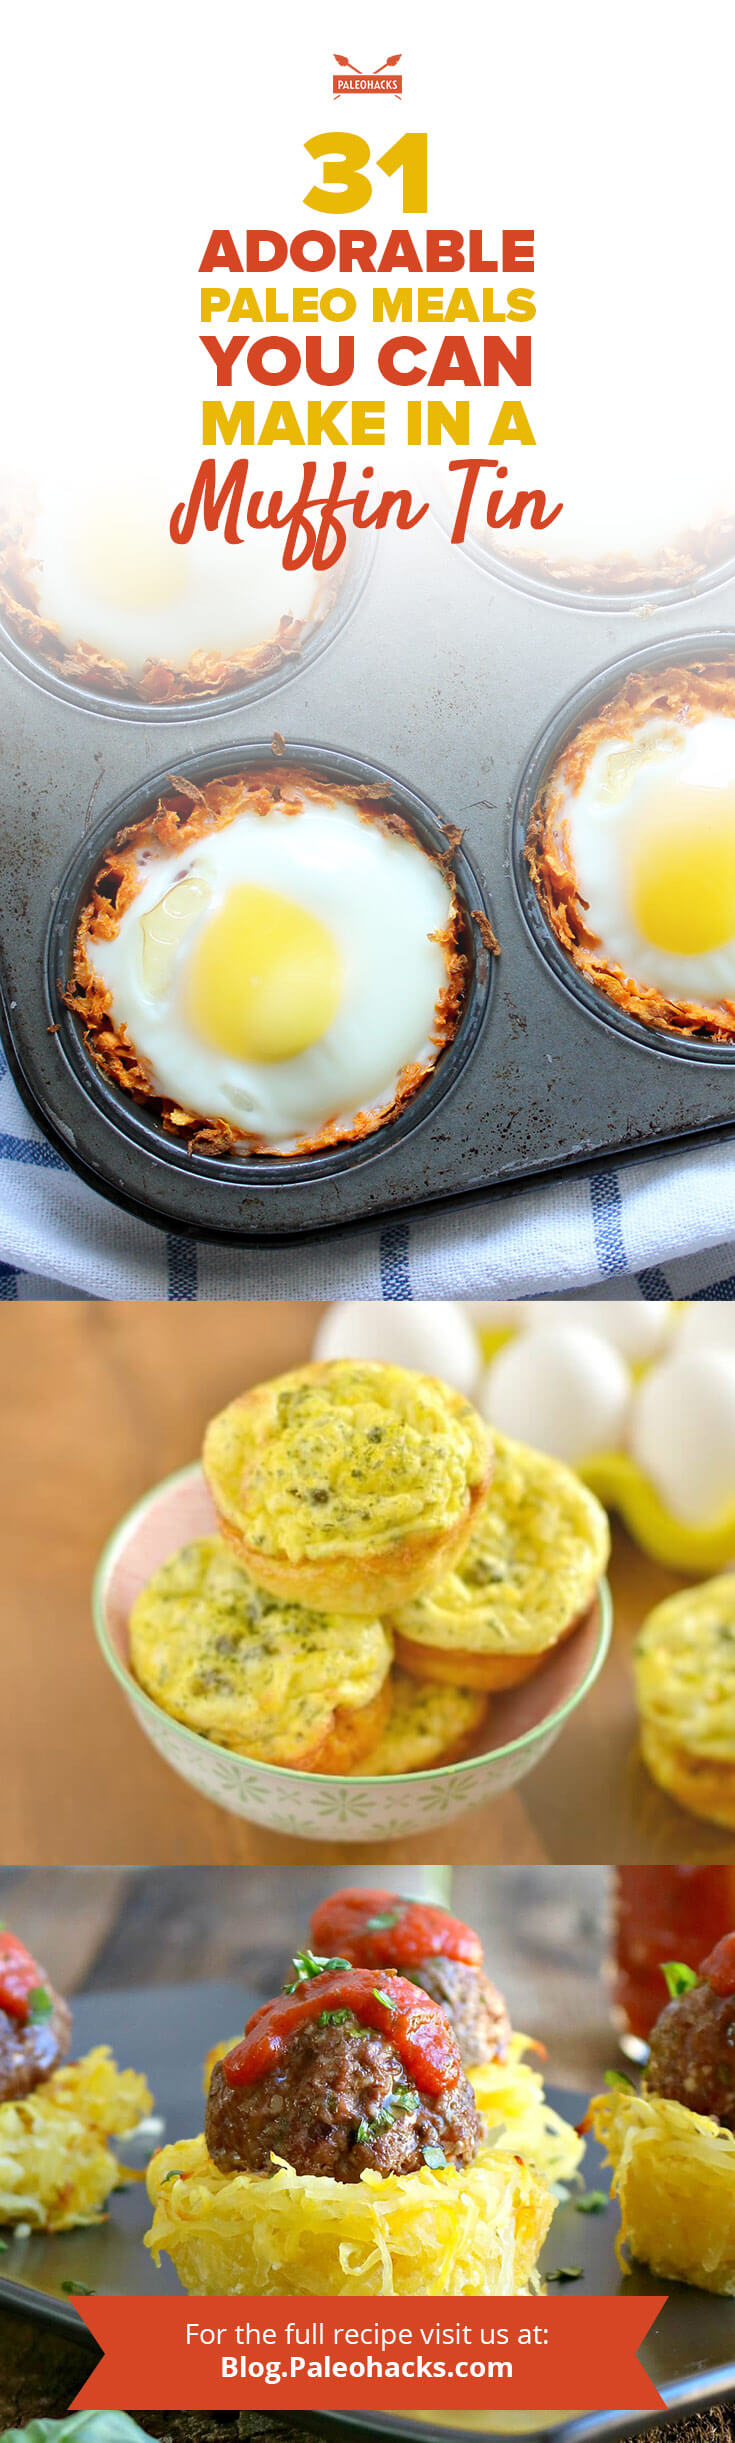 31 adorable paleo muffin tin meals paleohacks blog compilation pin 31 adorable paleo meals you can forumfinder Choice Image